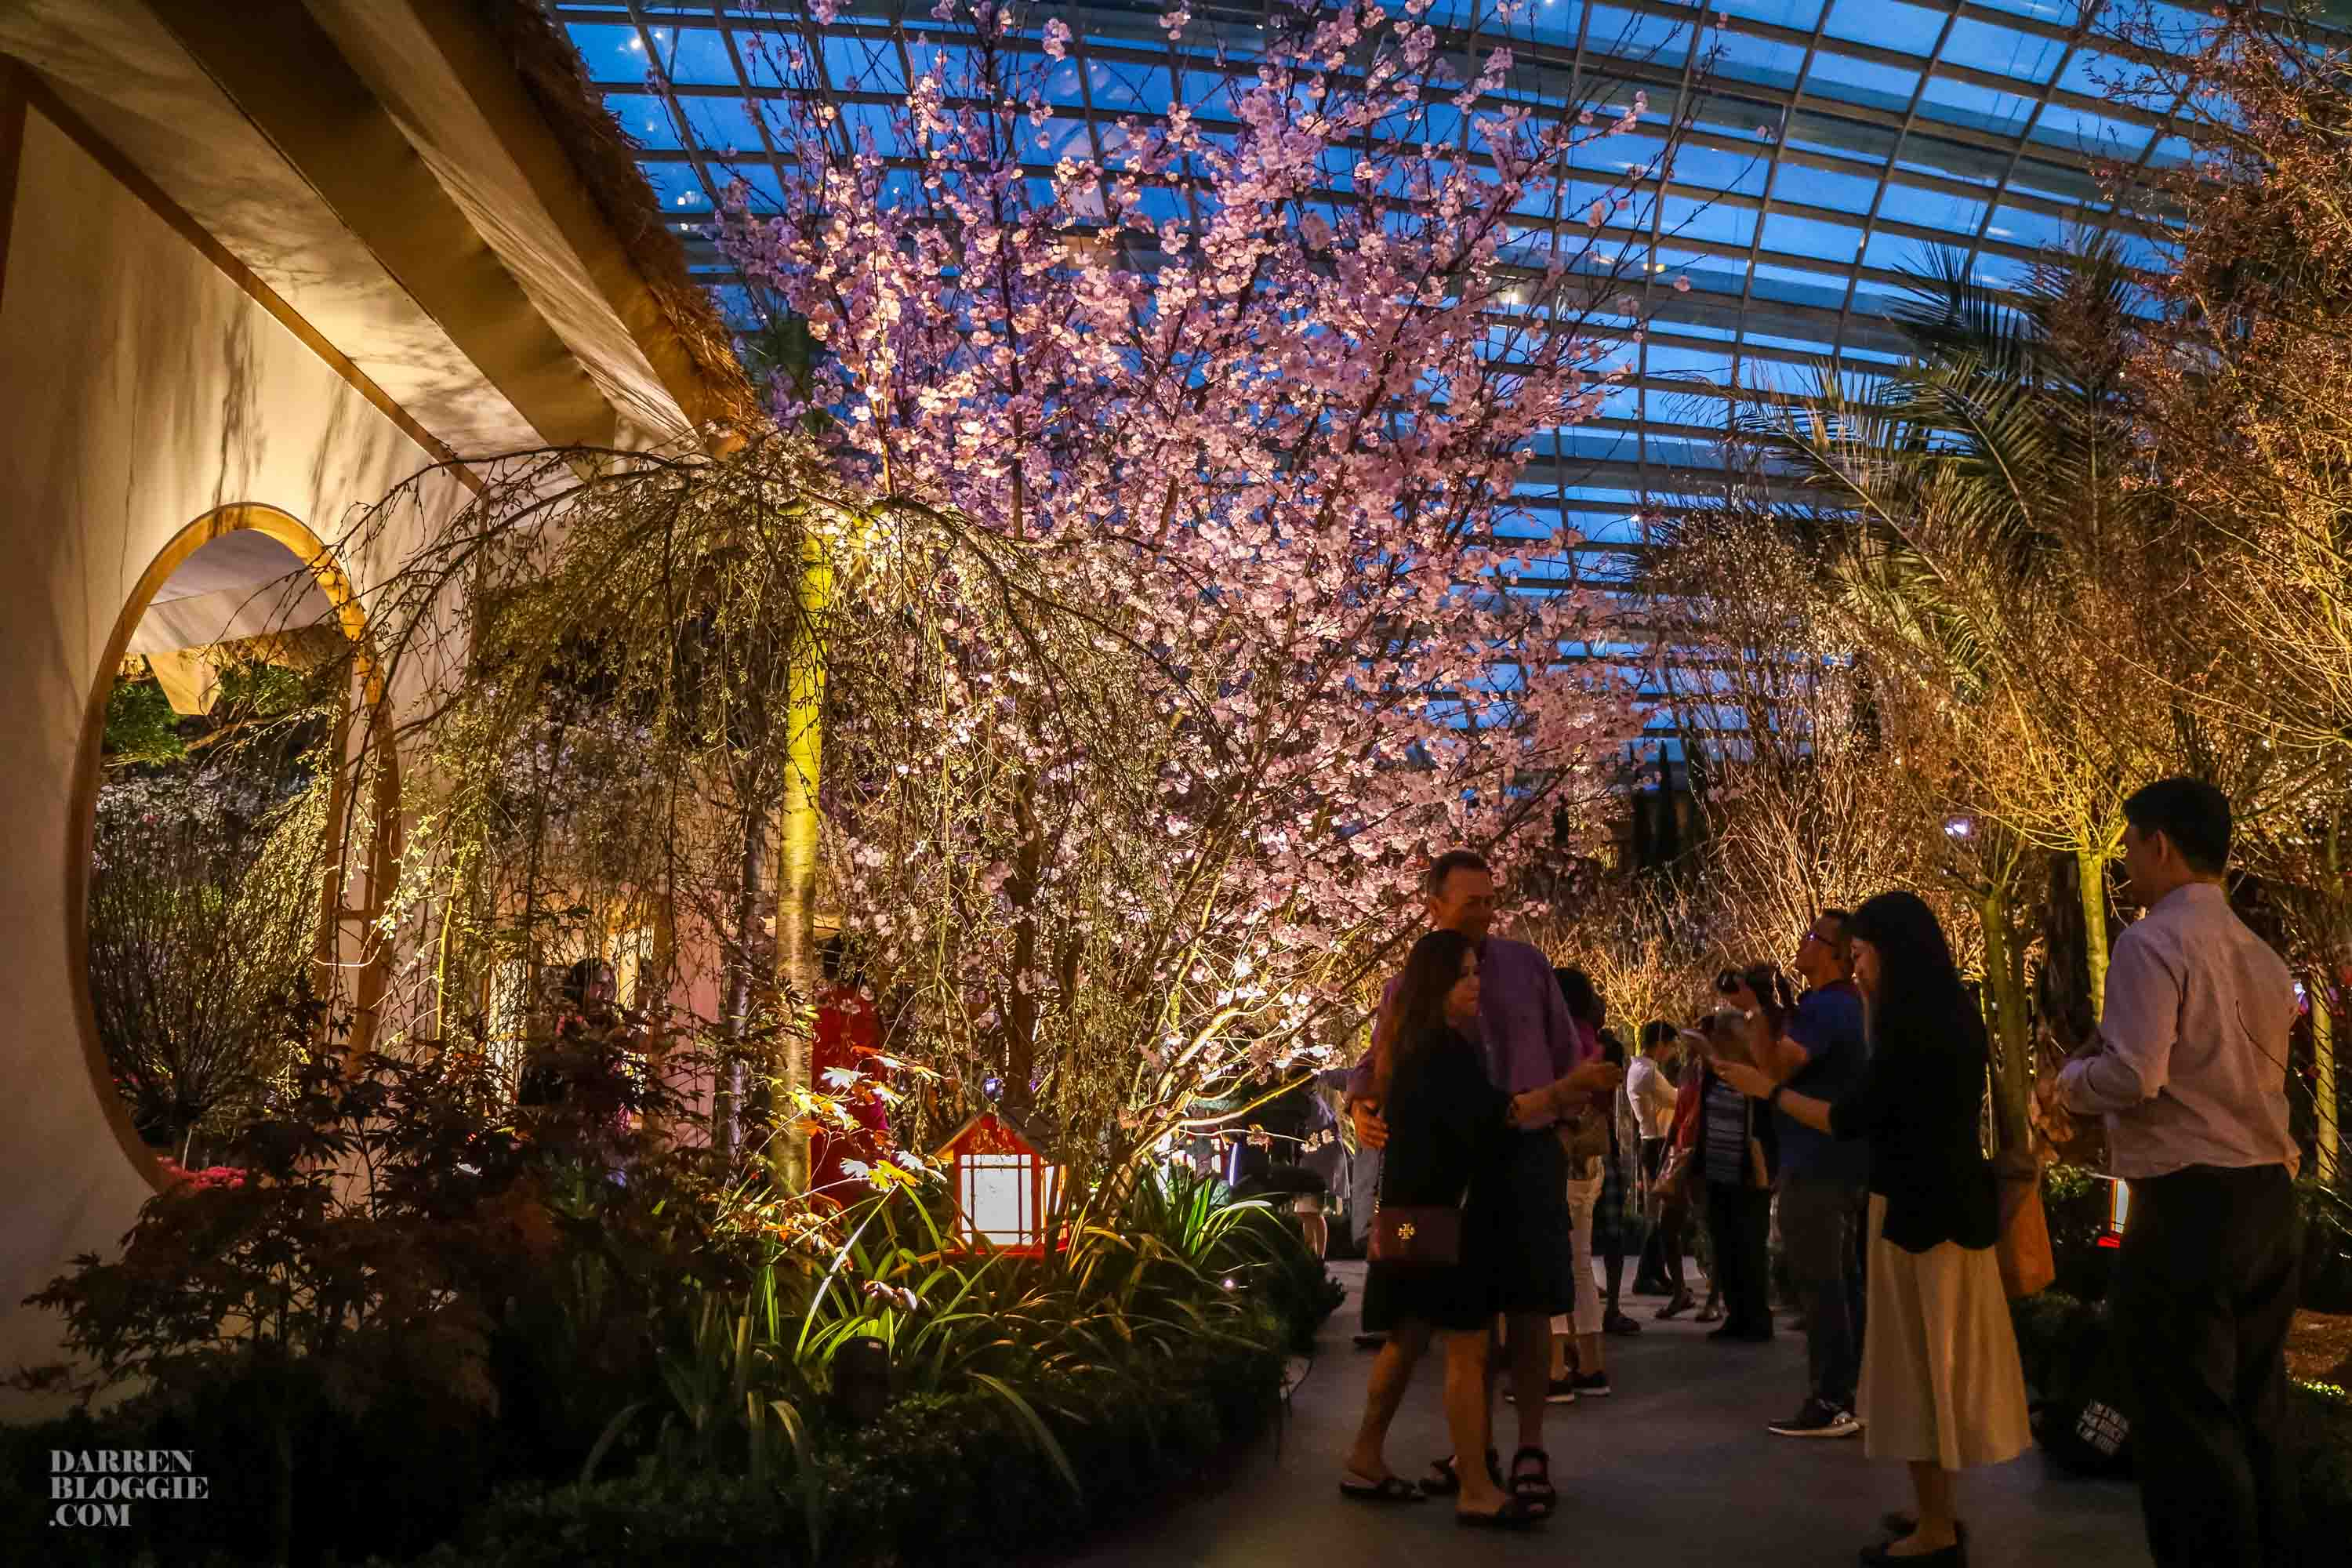 Cherry Blossoms in Bloom at Gardens by the Bay | Darren Bloggie 達人 ...